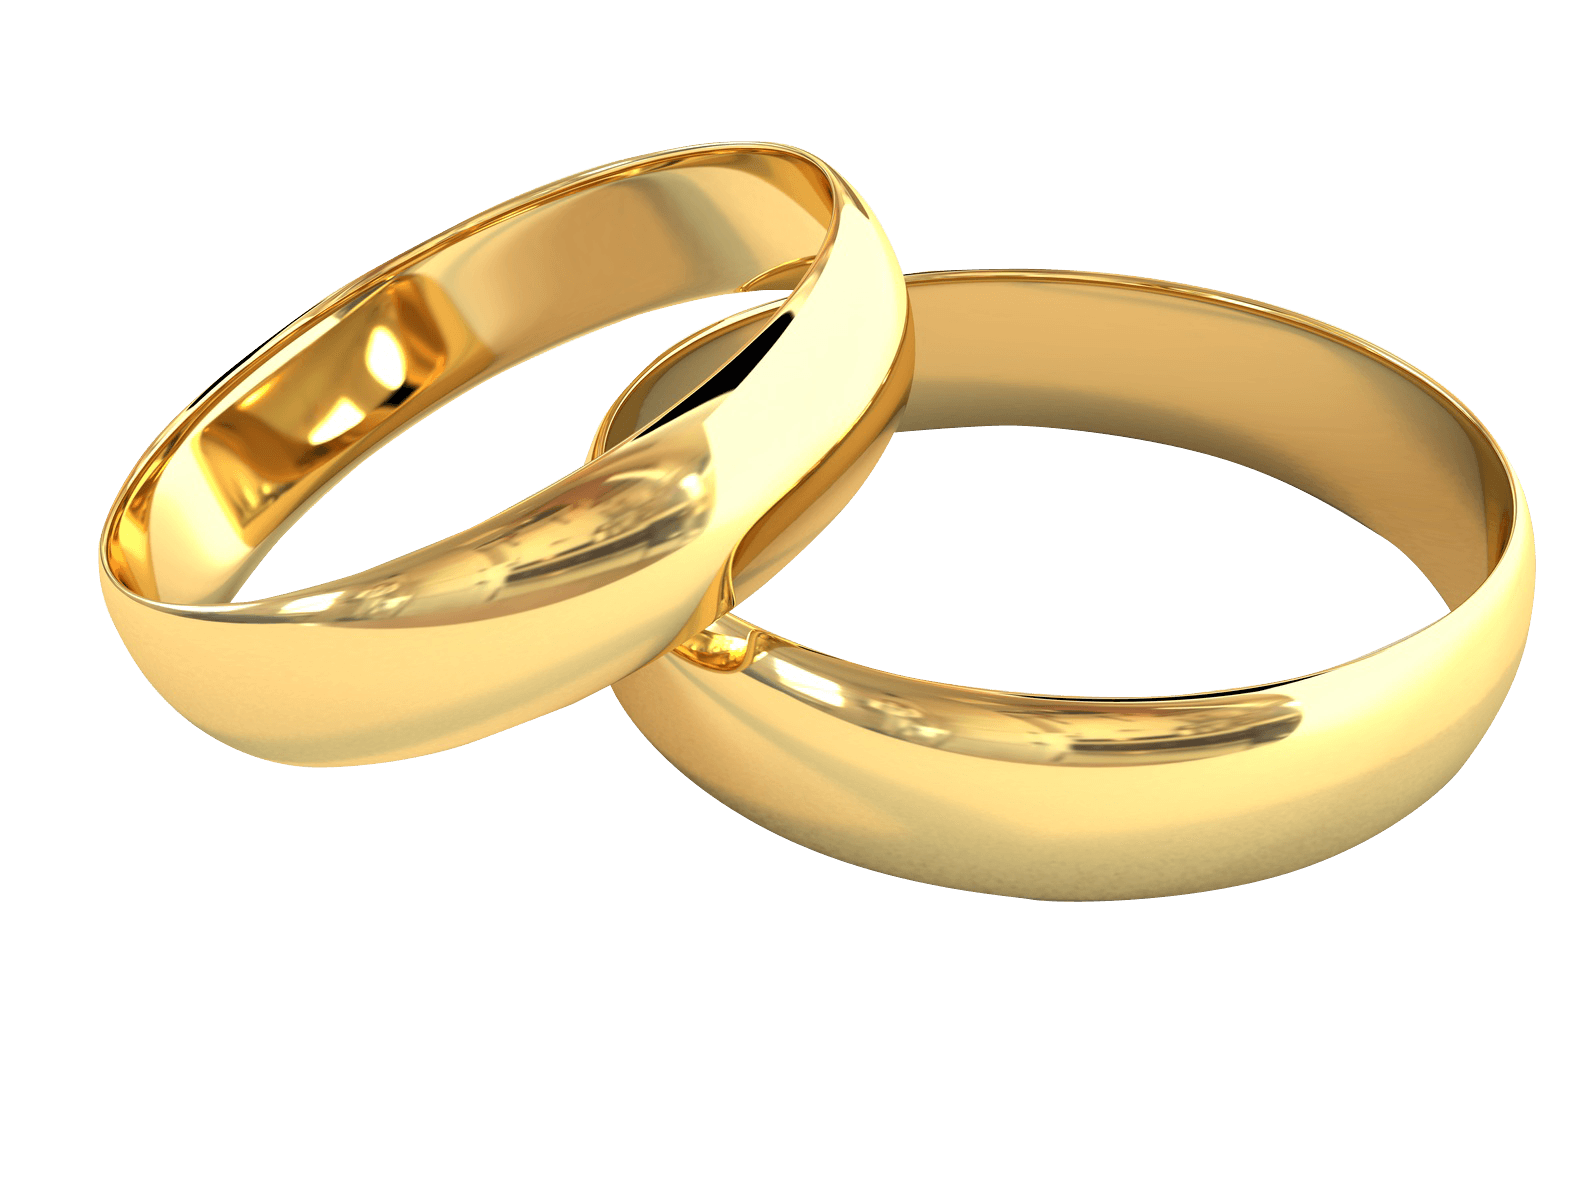 Pair Of Wedding Rings Jewelry Transparent Png Stickpng